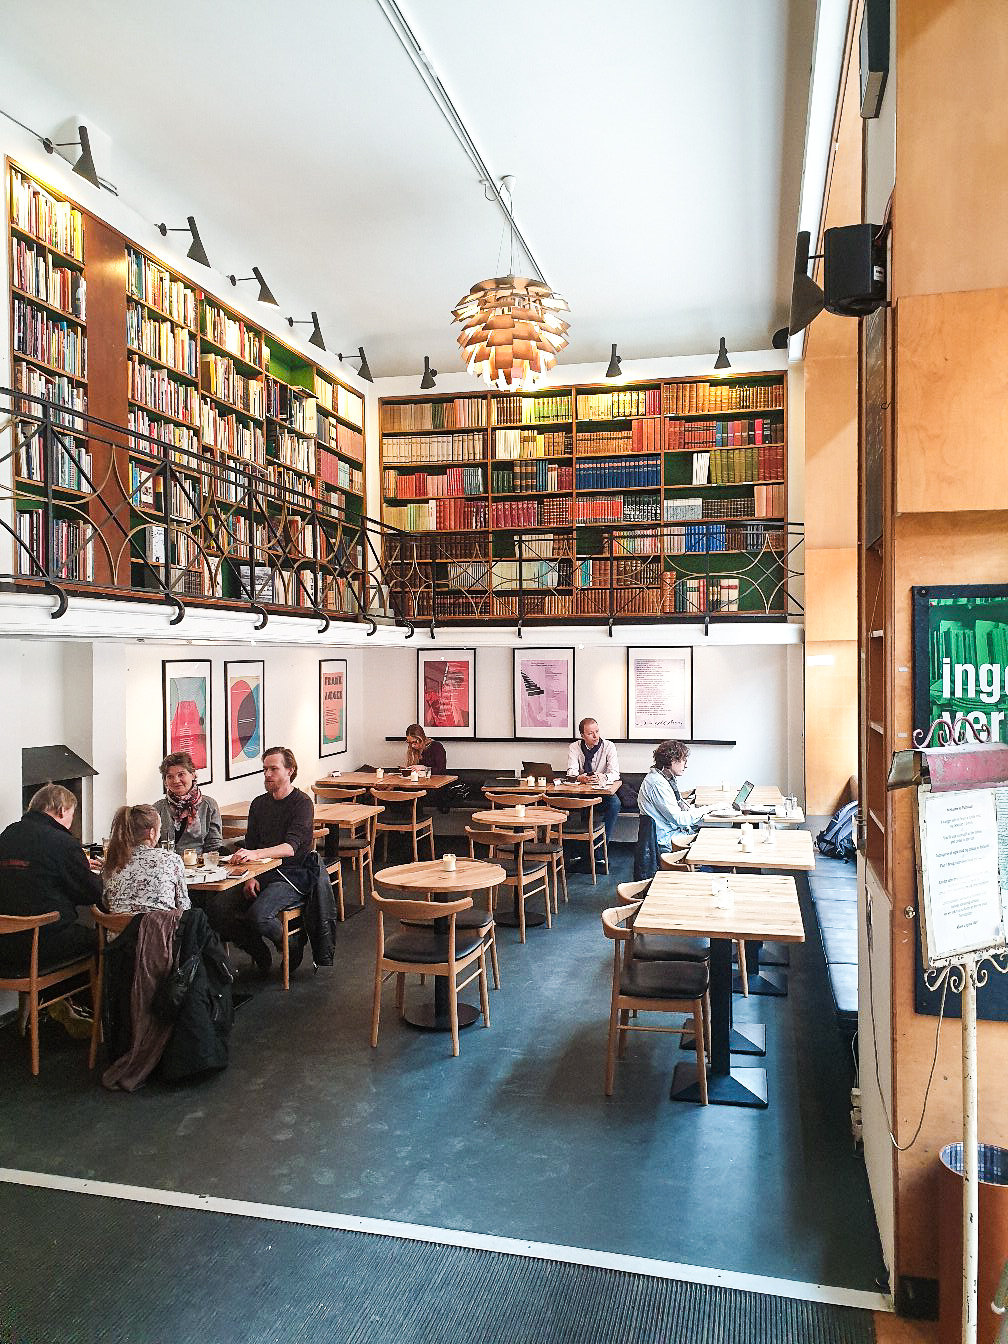 Go and experience incredible student atmosphere in Paludan while in Copenhagen.